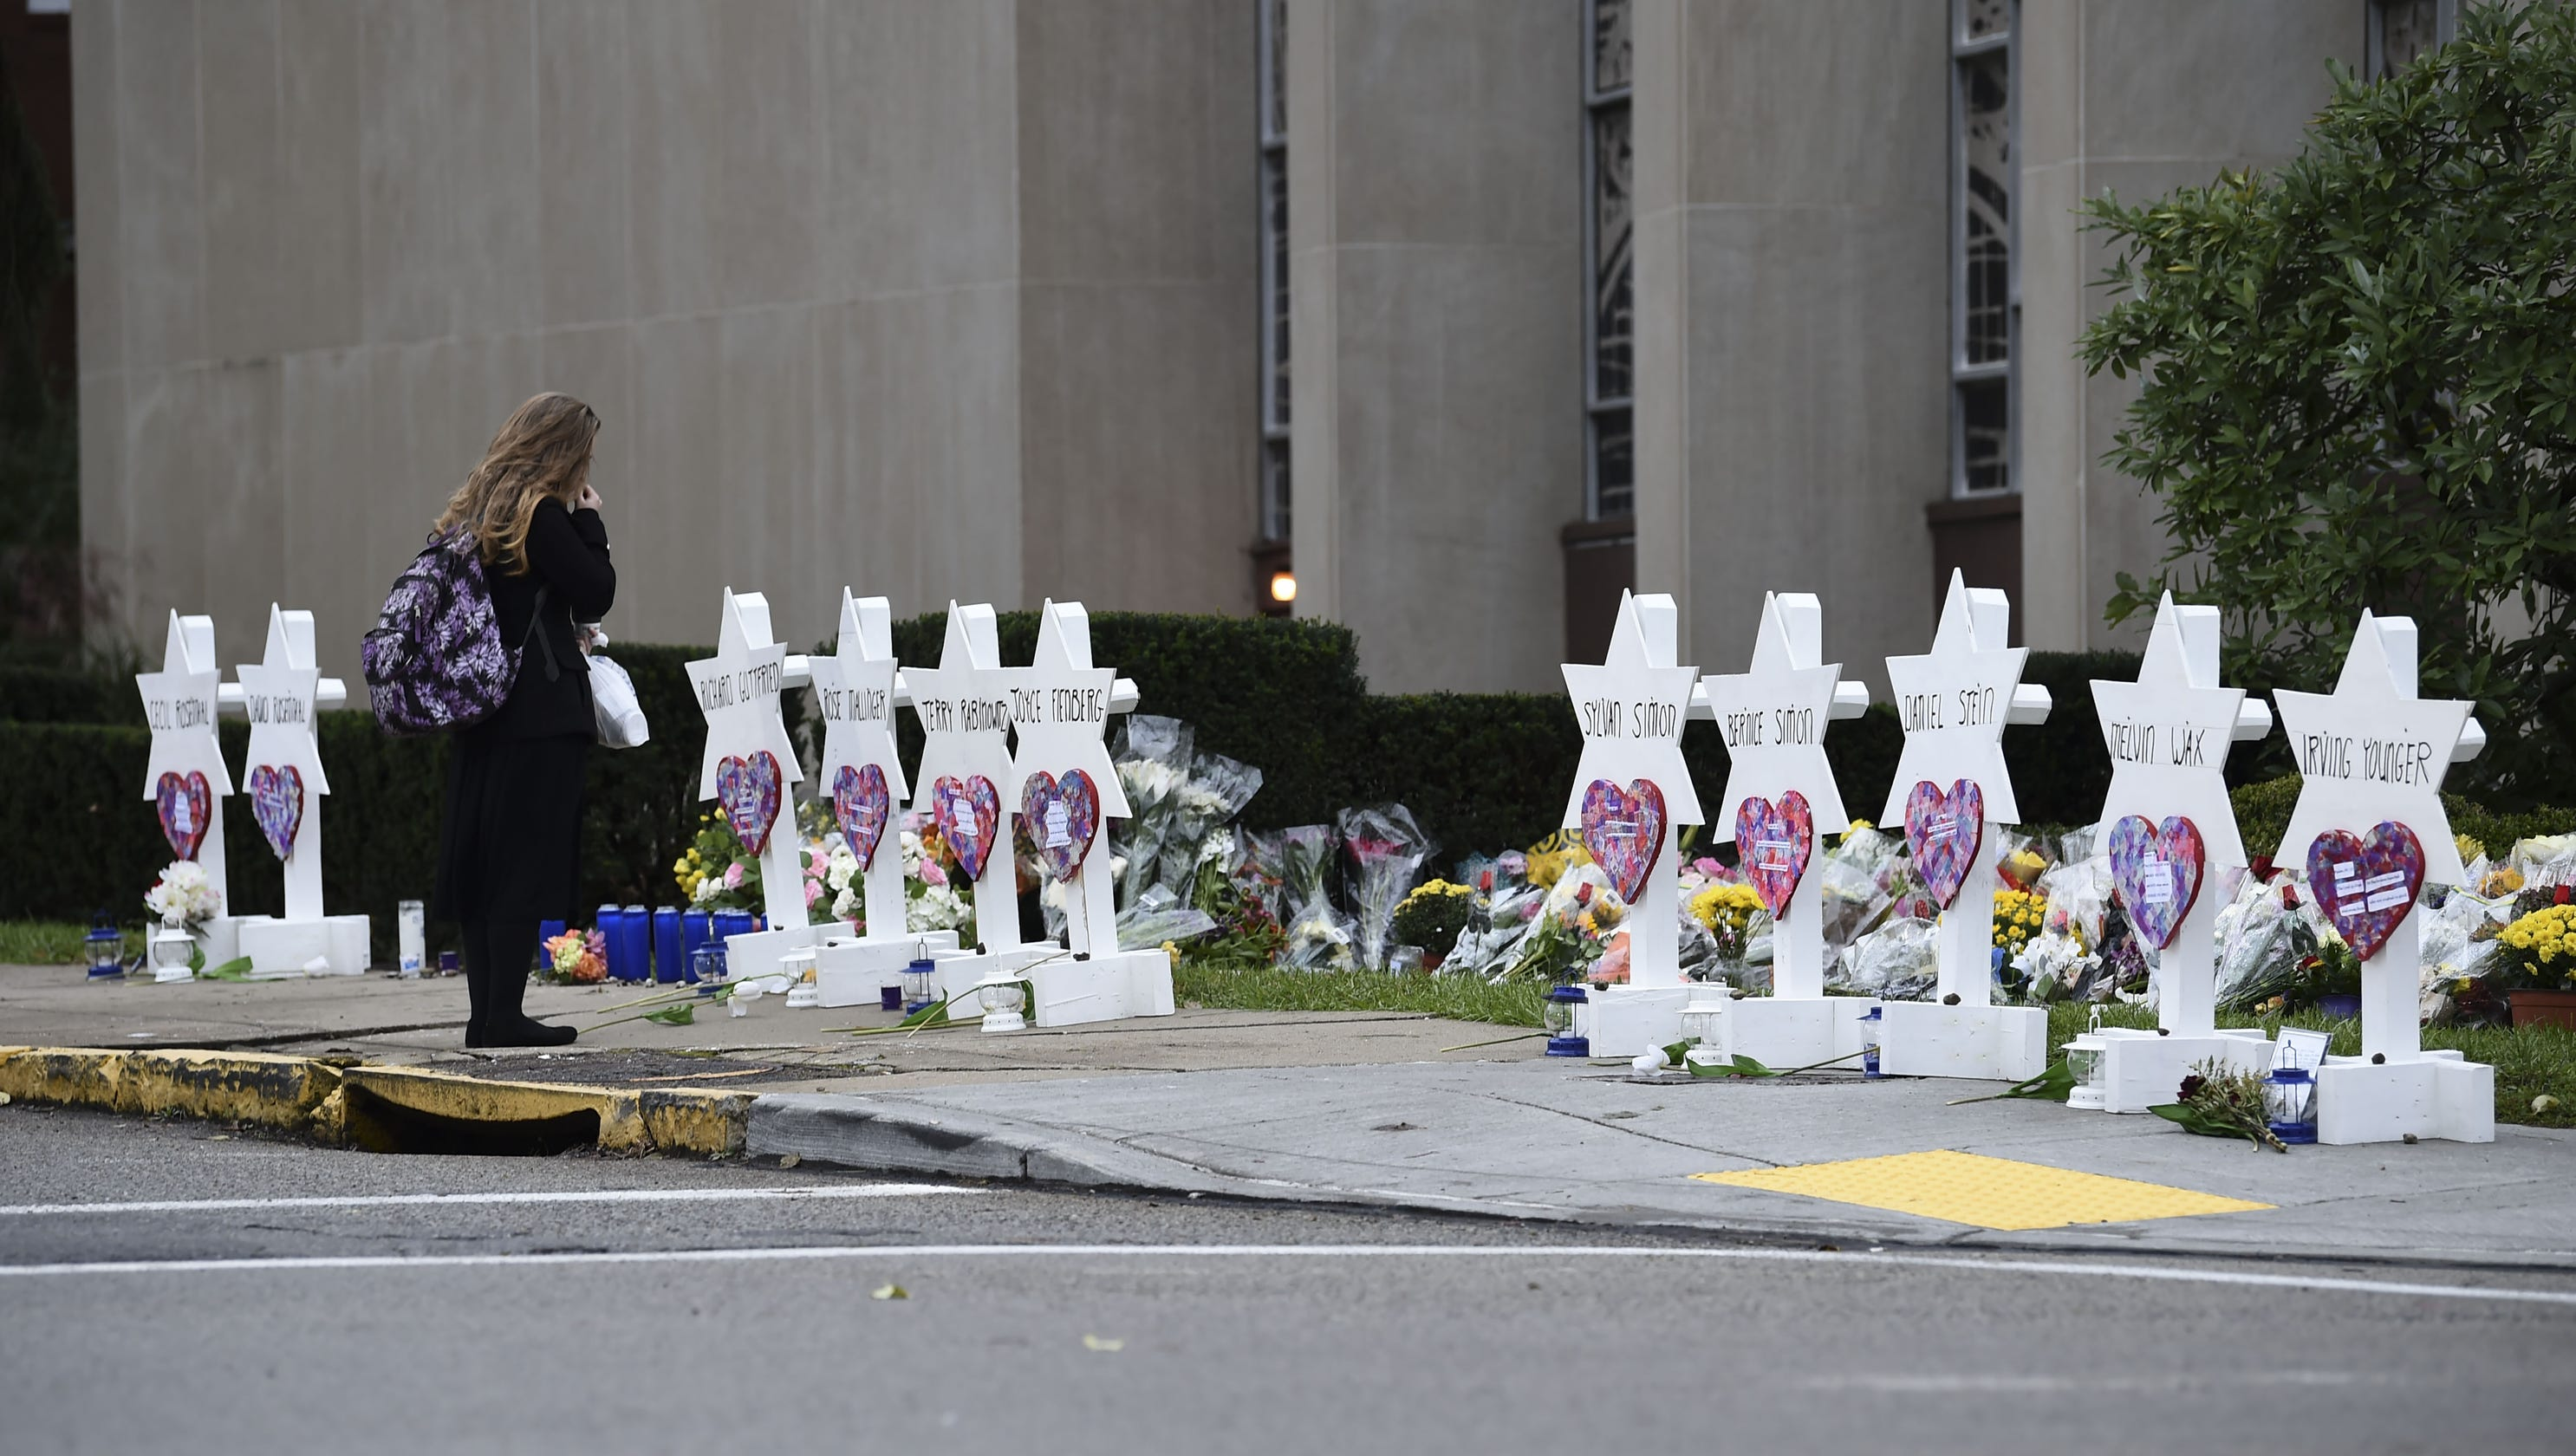 Pittsburgh synagogue shooting: What we know, questions that